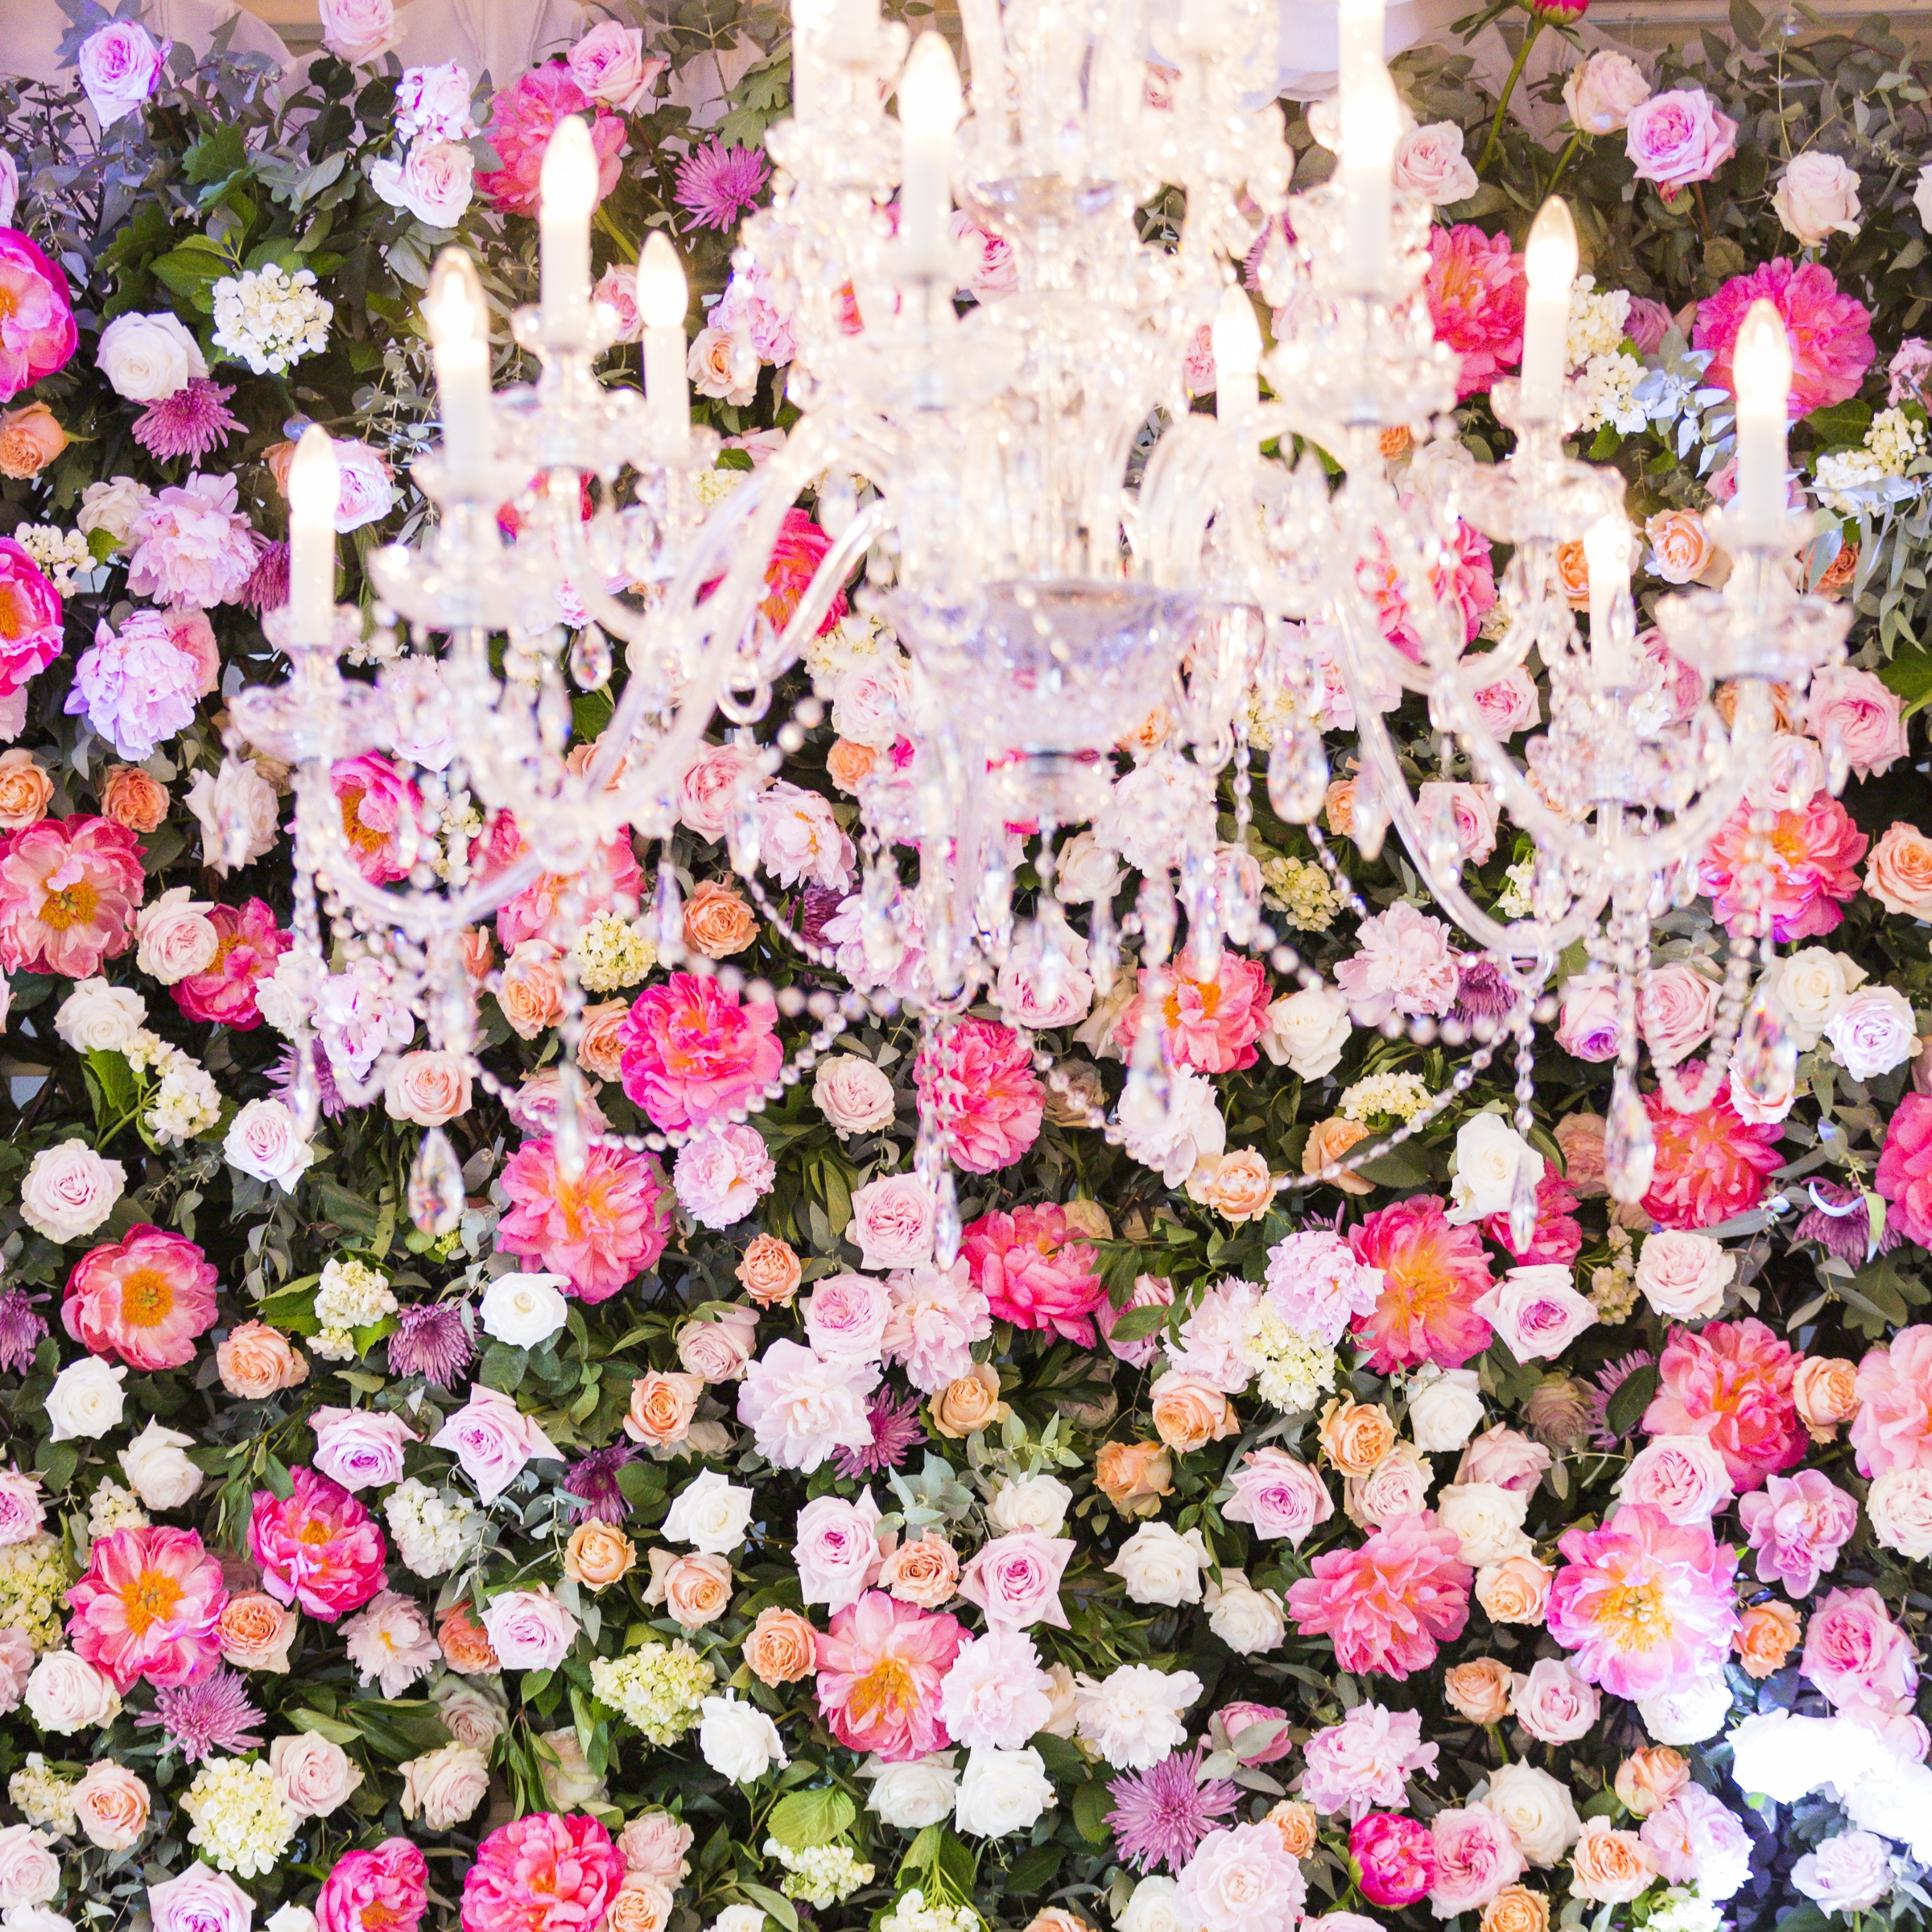 full_crystal_chandeliers_wedding_styling_event_hire_sydney_pink_wedding_flowers.jpg